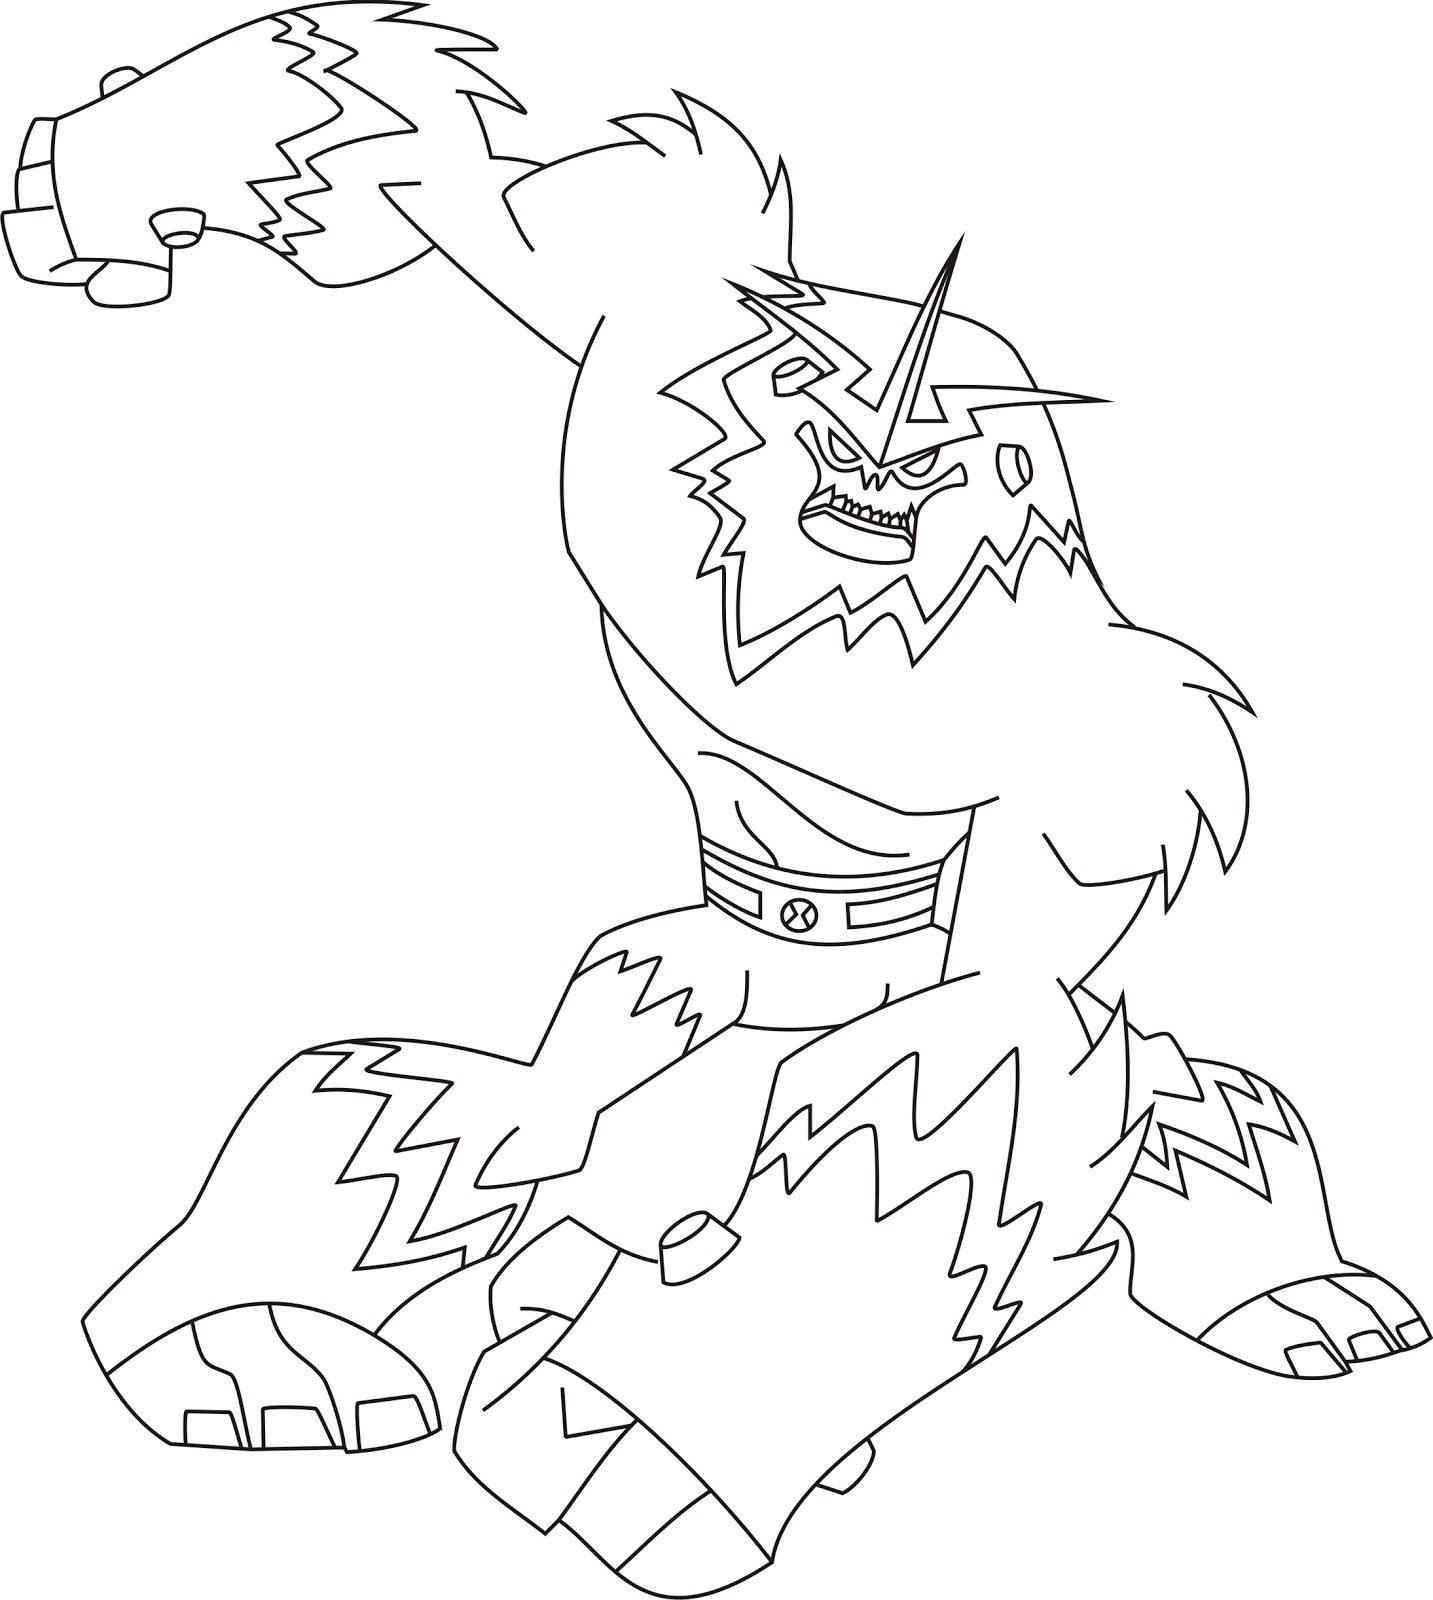 Ben 10 Coloring Page - Free Ben 10 Coloring Pages ... | 1600x1433